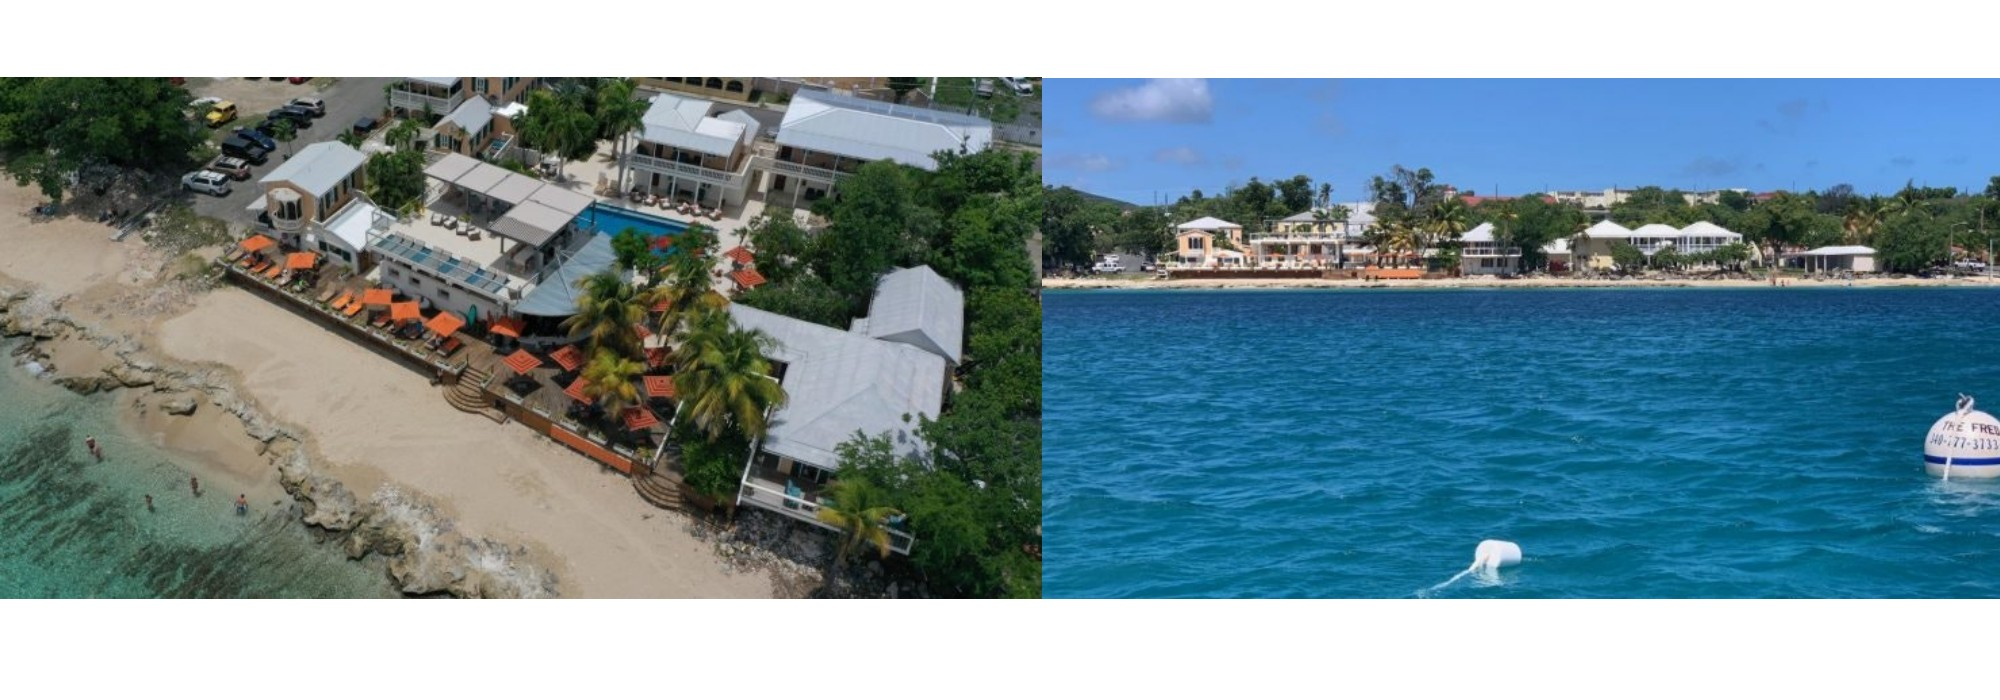 USVI Boutique Eco-Friendly Beachfront Caribbean Resort